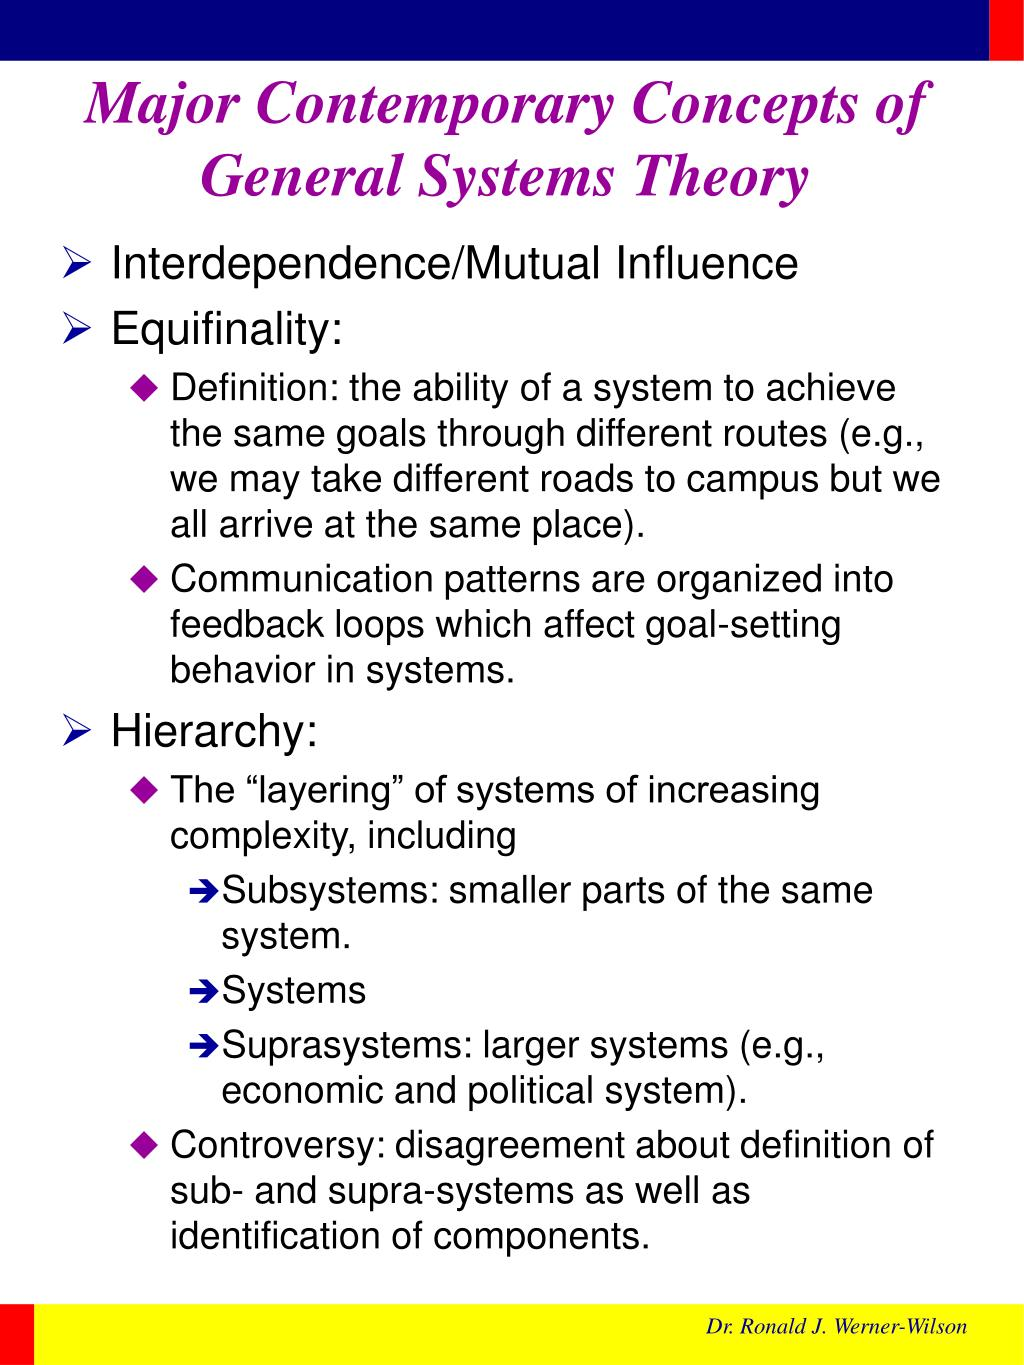 Major Contemporary Concepts of General Systems Theory